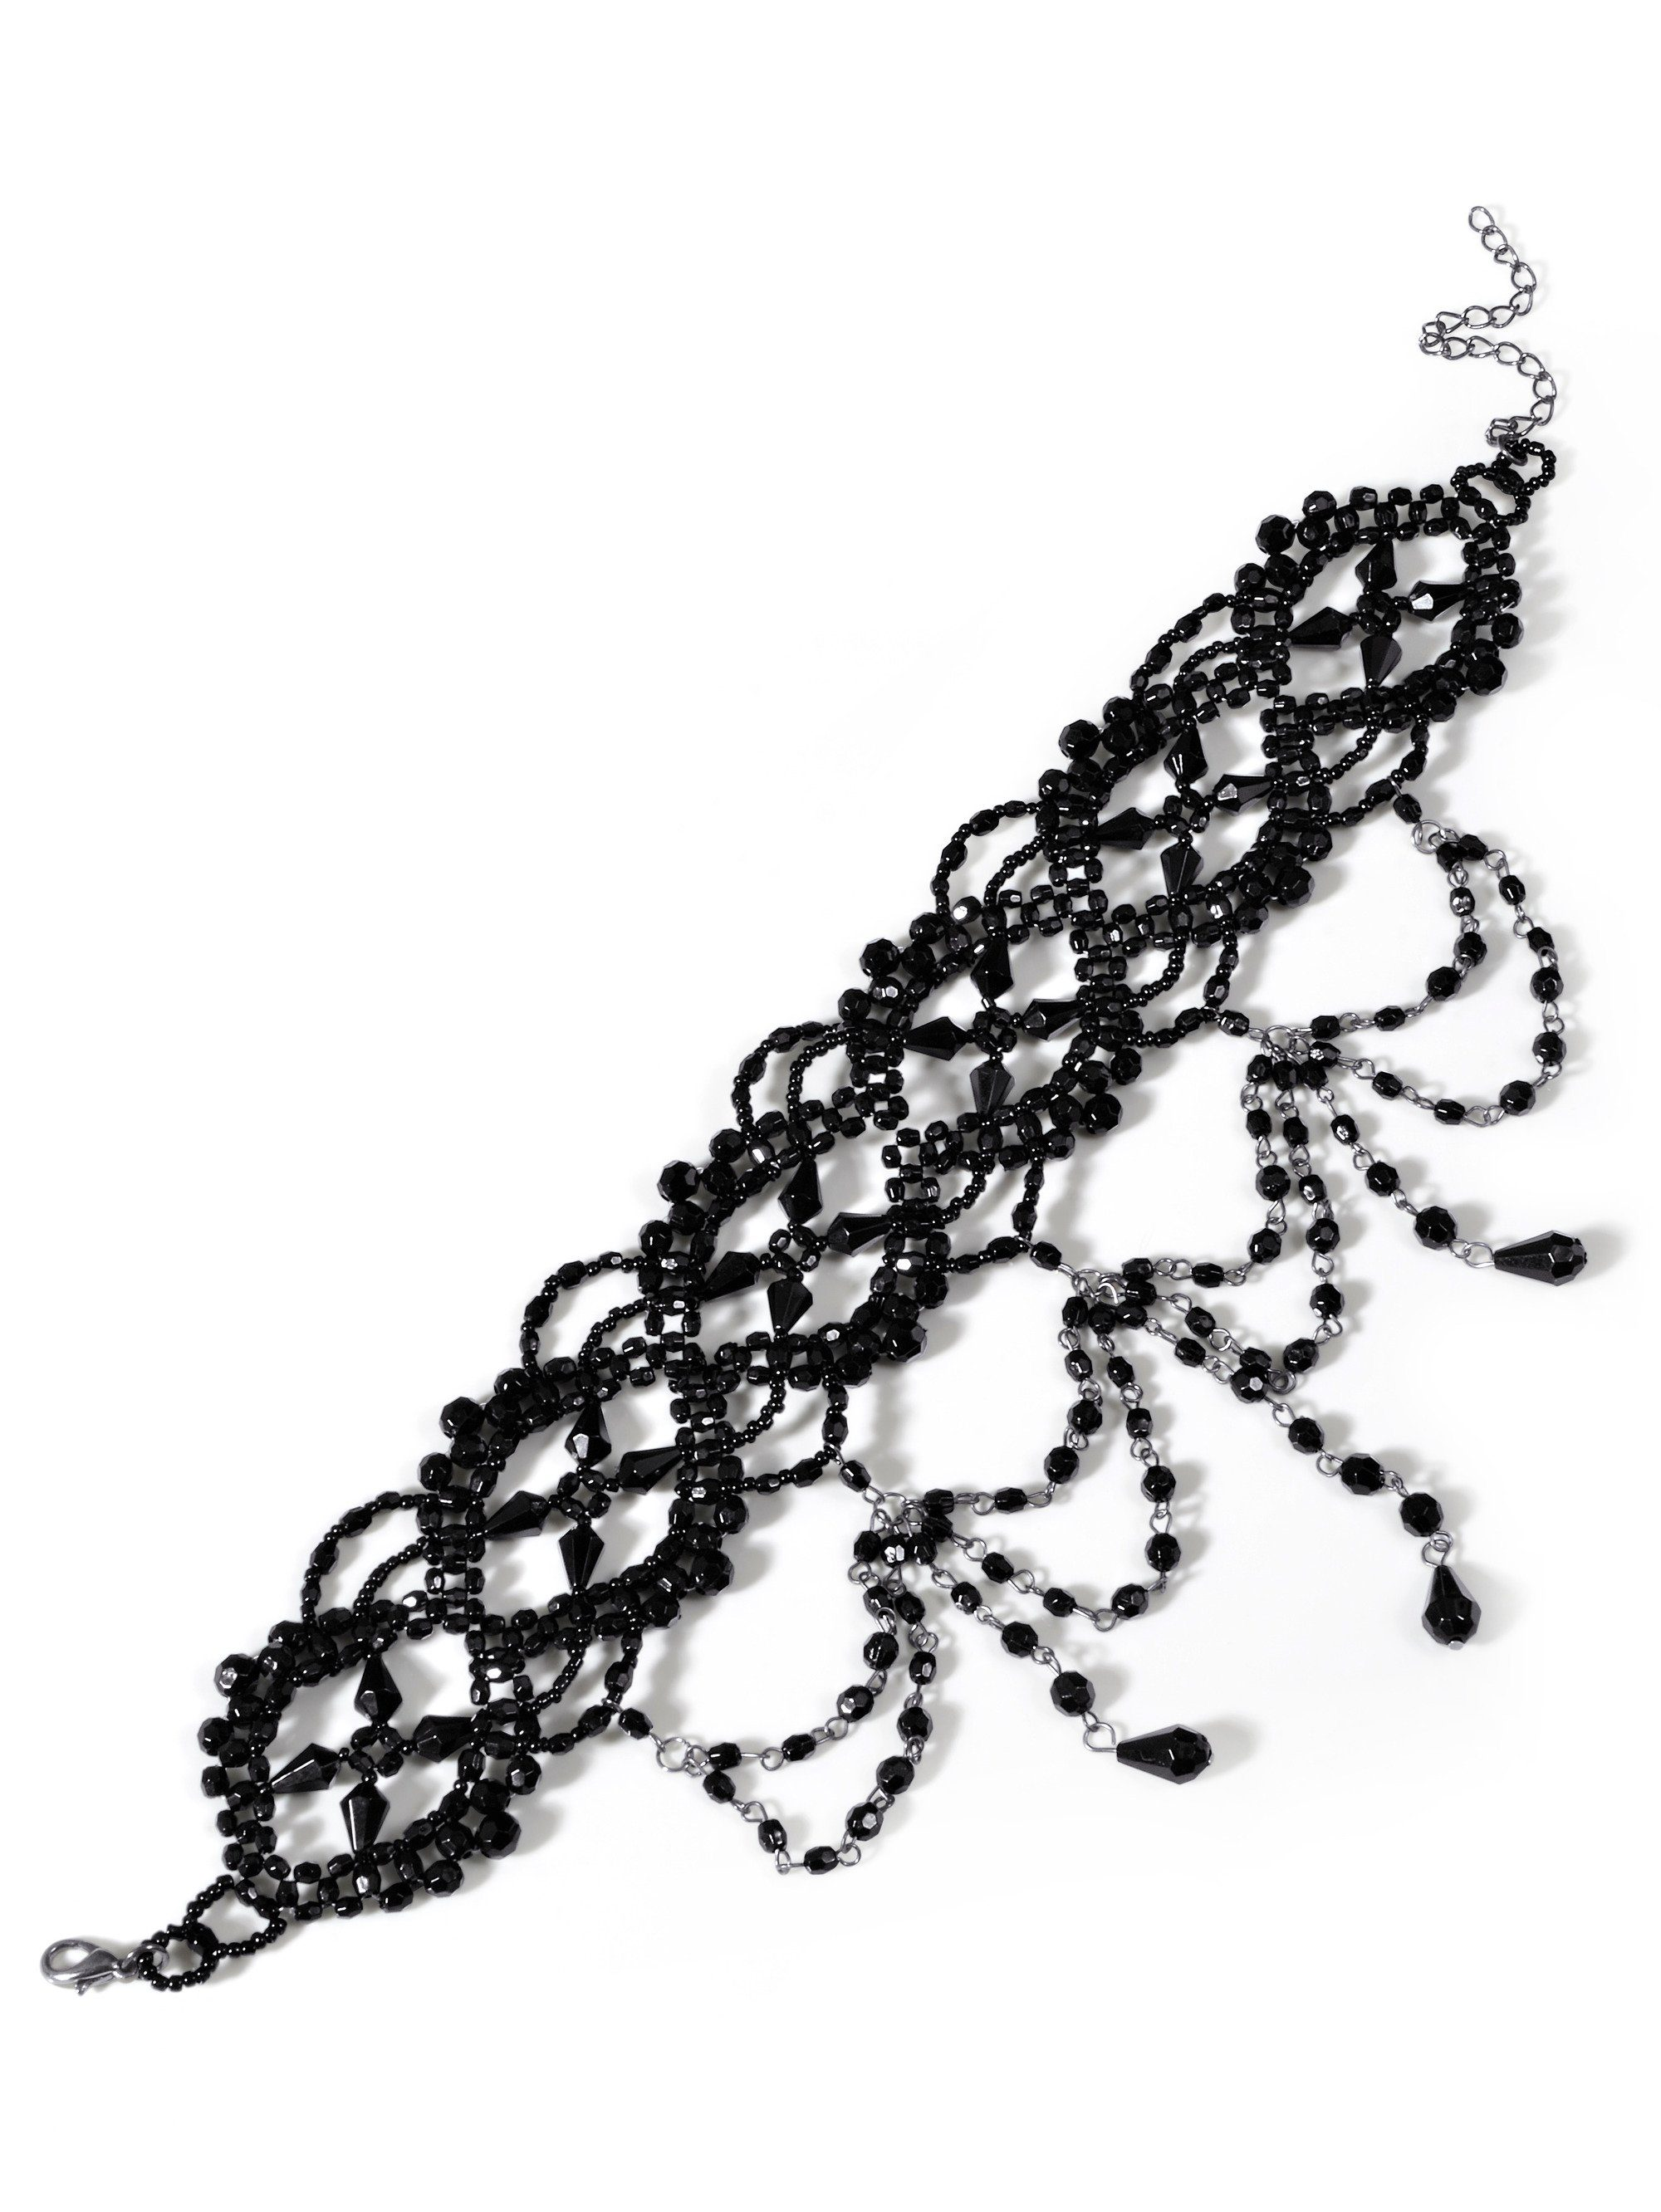 Alba Moda Choker-Kette in halsnaher Form in modischer Form